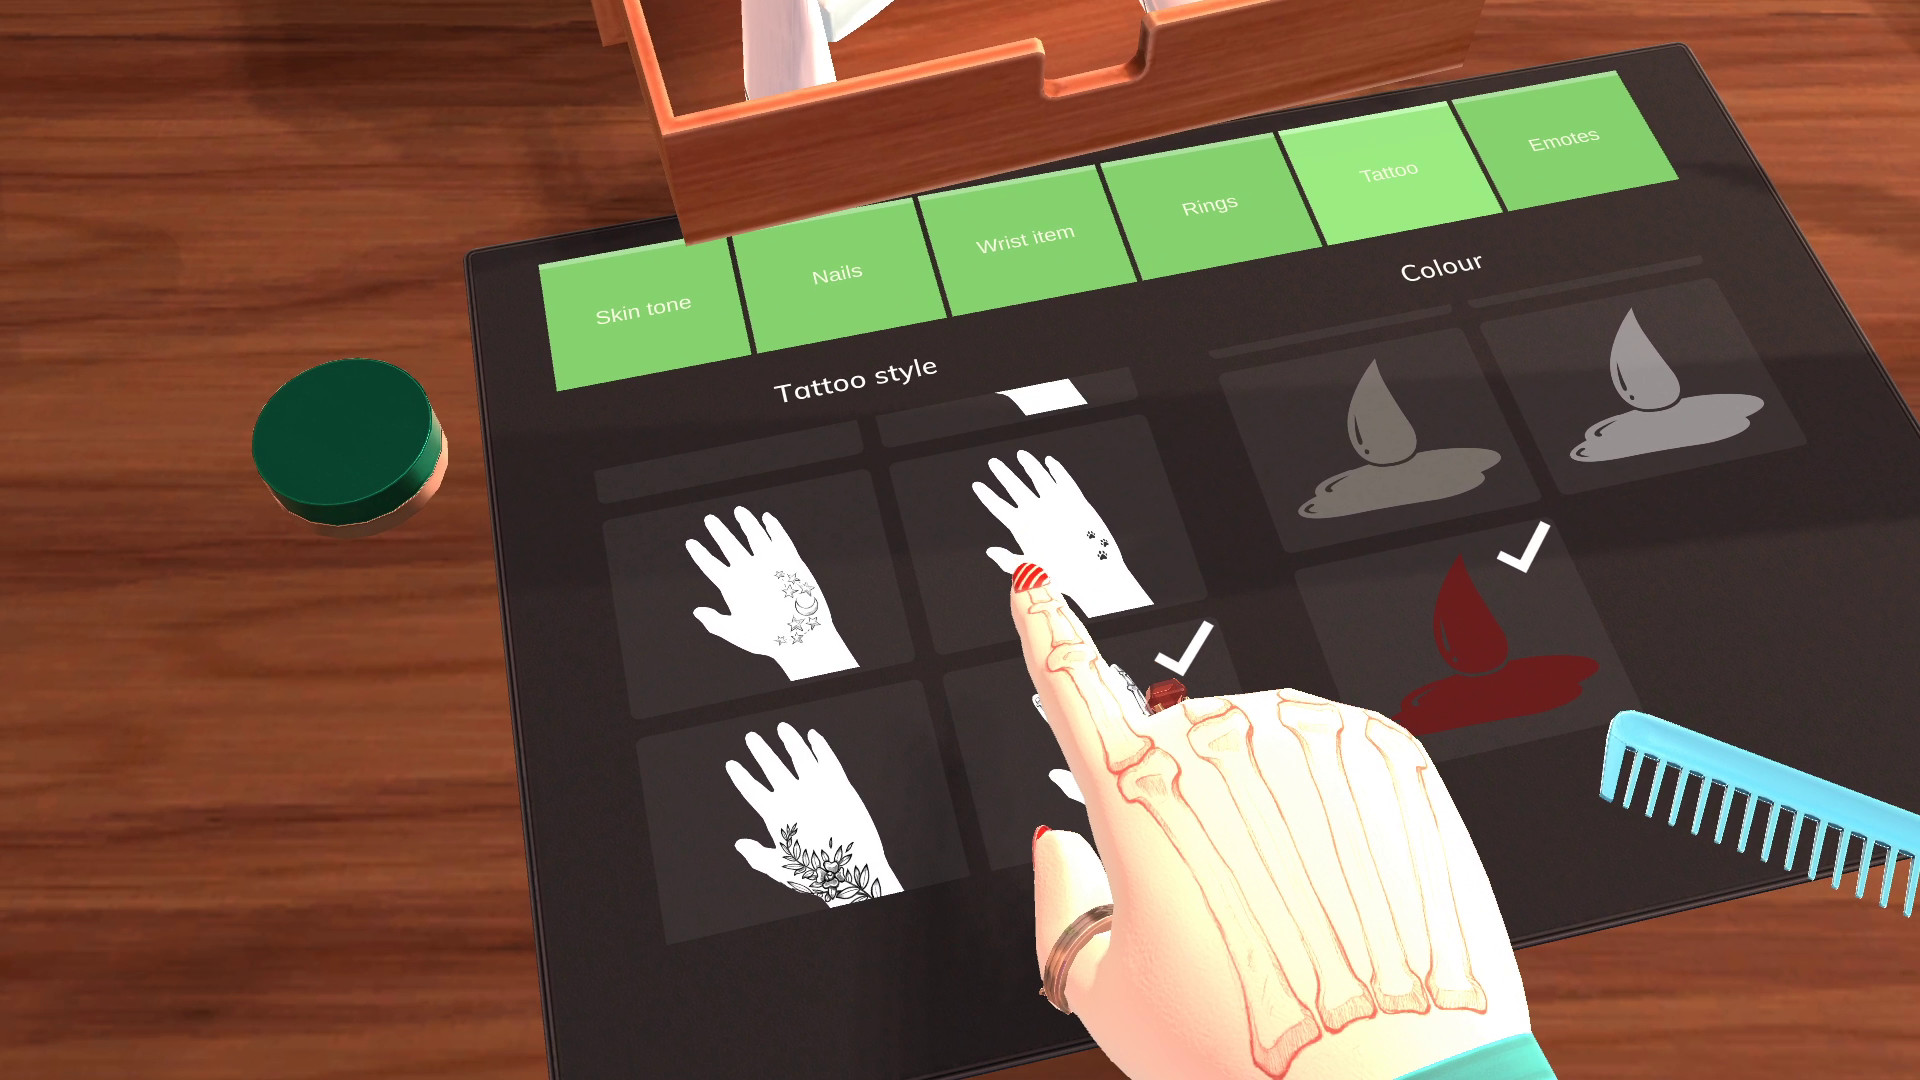 Table Manners: Physics-Based Dating Game on Steam